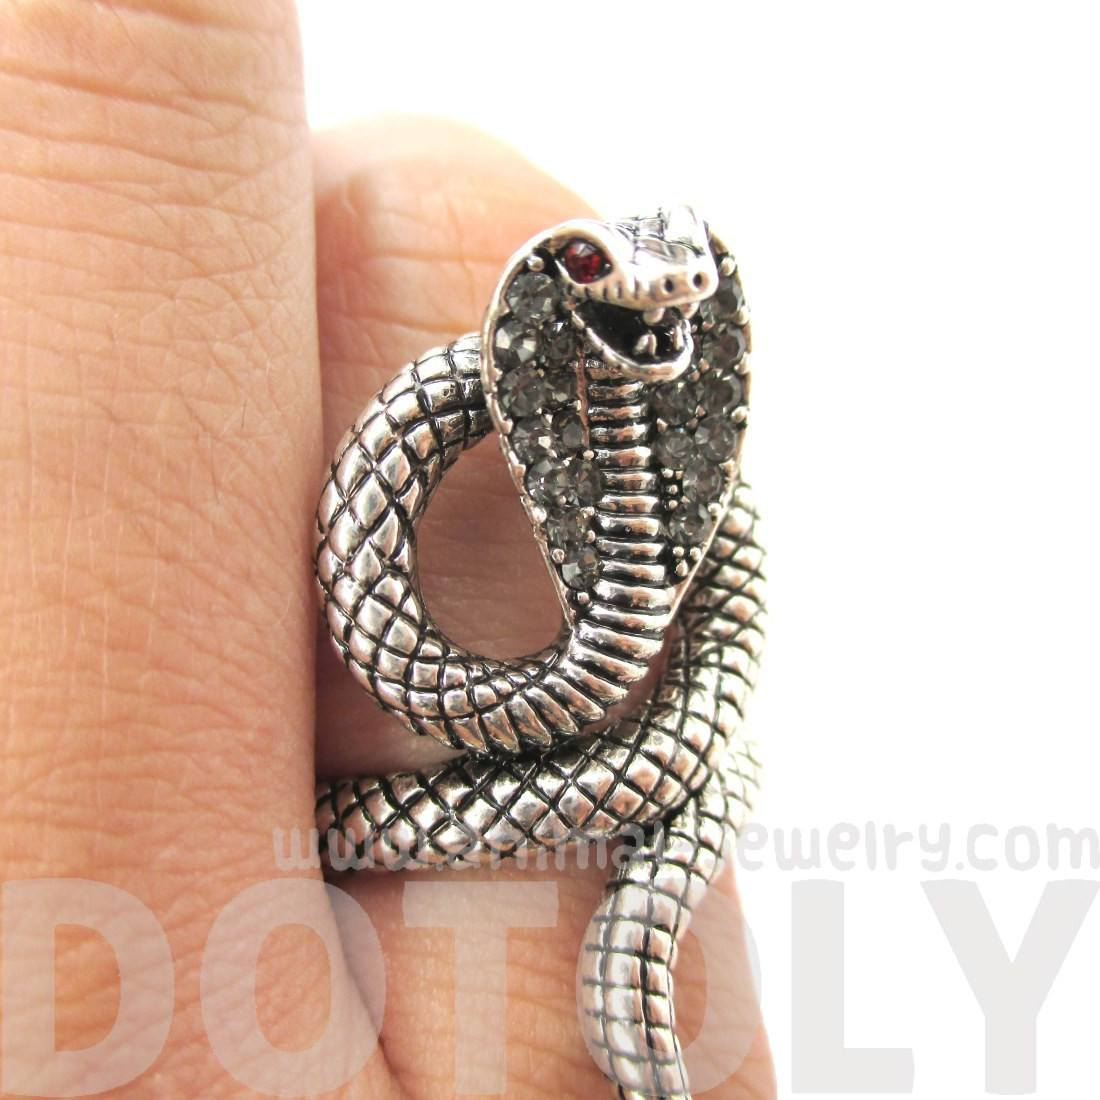 Realistic Cobra Snake Shaped Textured Animal Themed Ring in Silver